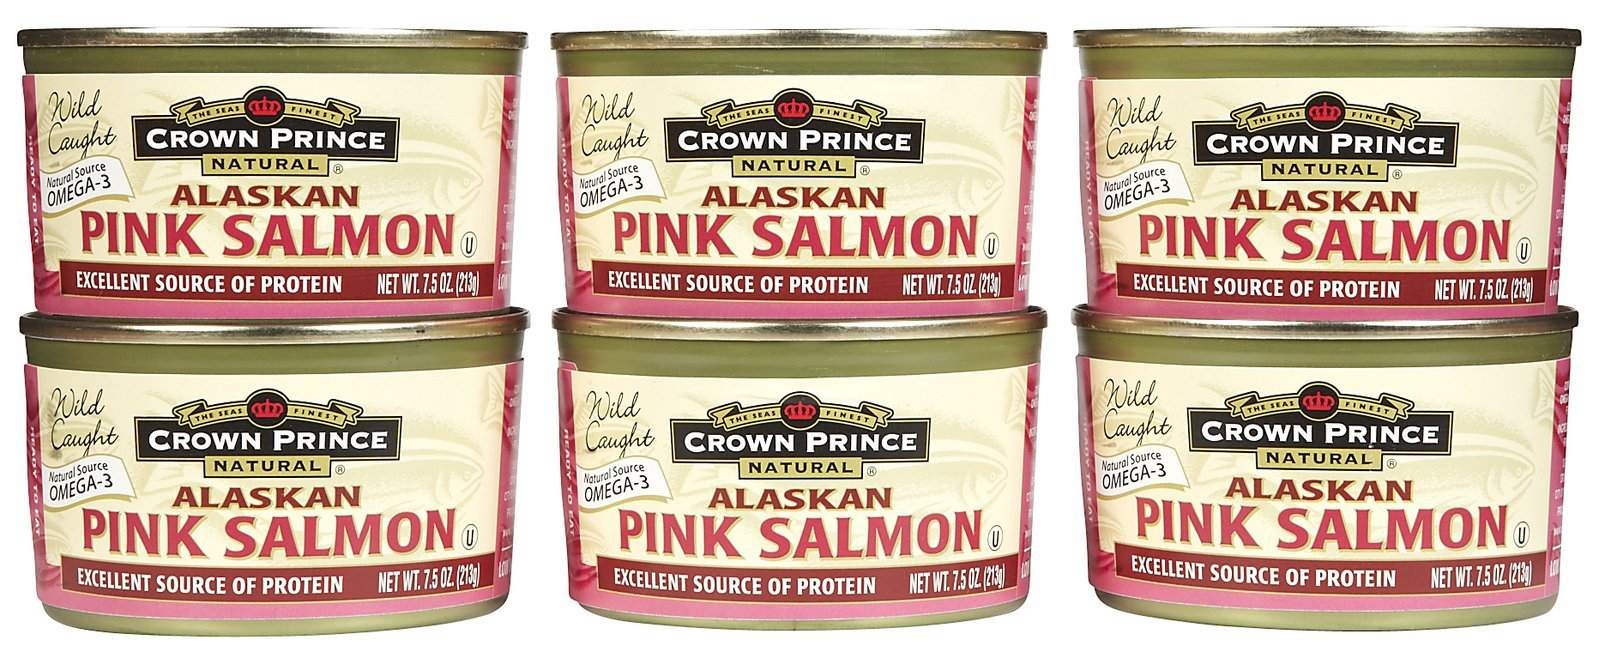 Crown Prince Natural Alaskan Pink Salmon, No Salt Added, Cans, 7.5 oz, 6 pk